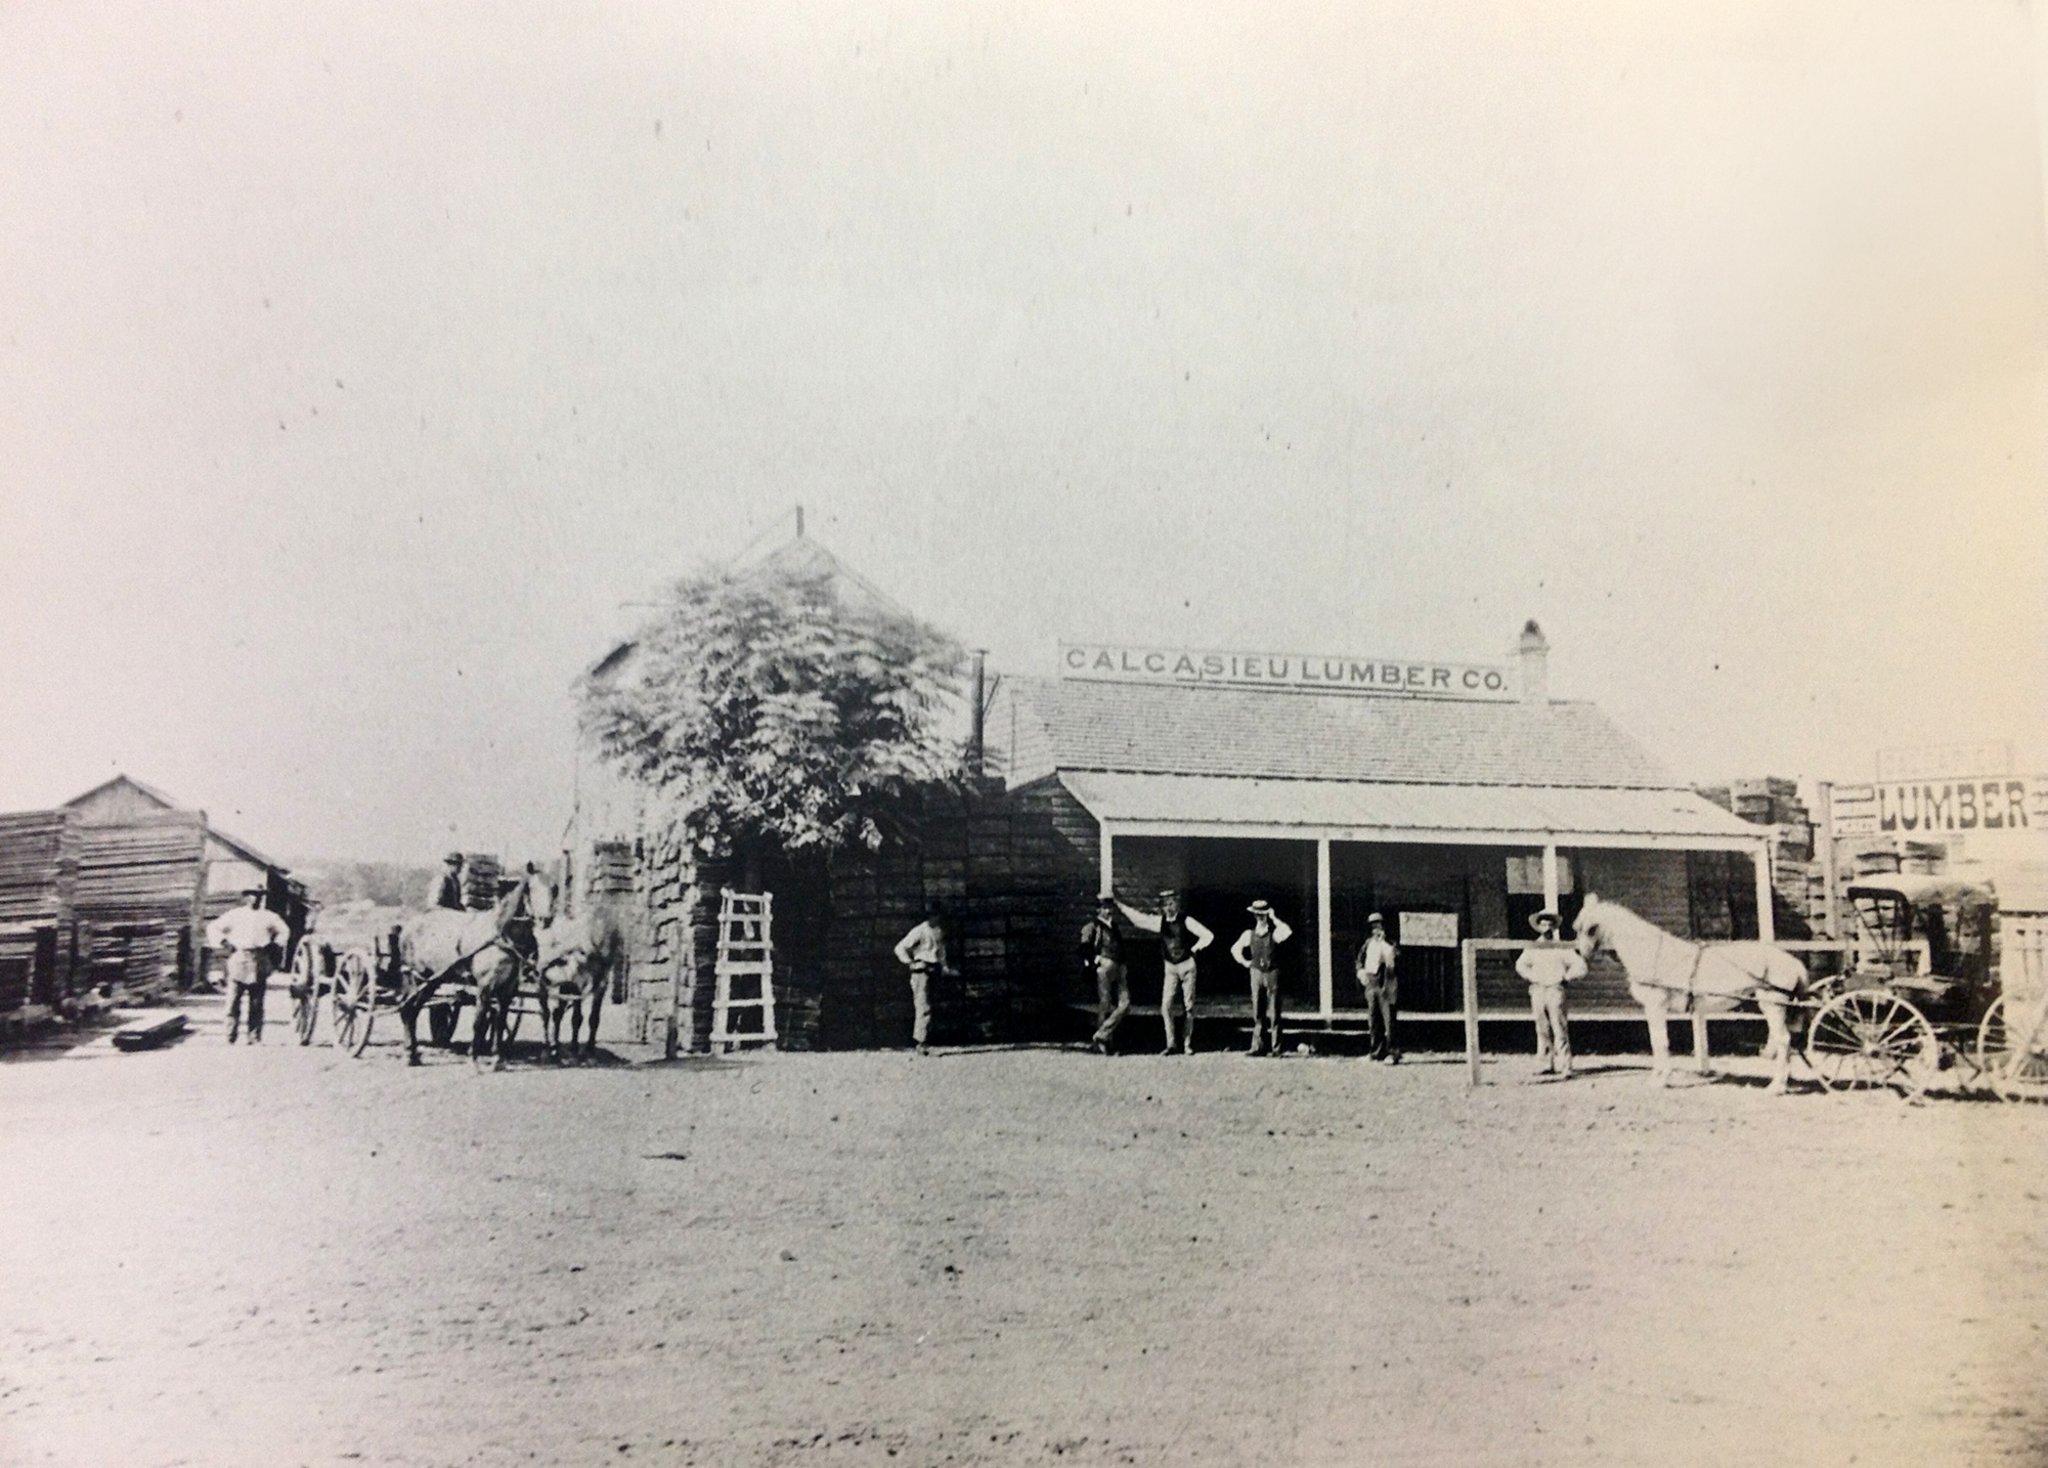 Founded in the 1880s, Calcasieu Lumber Companywas Austin's first lumber yard.  Image found on www.mystatesman.com